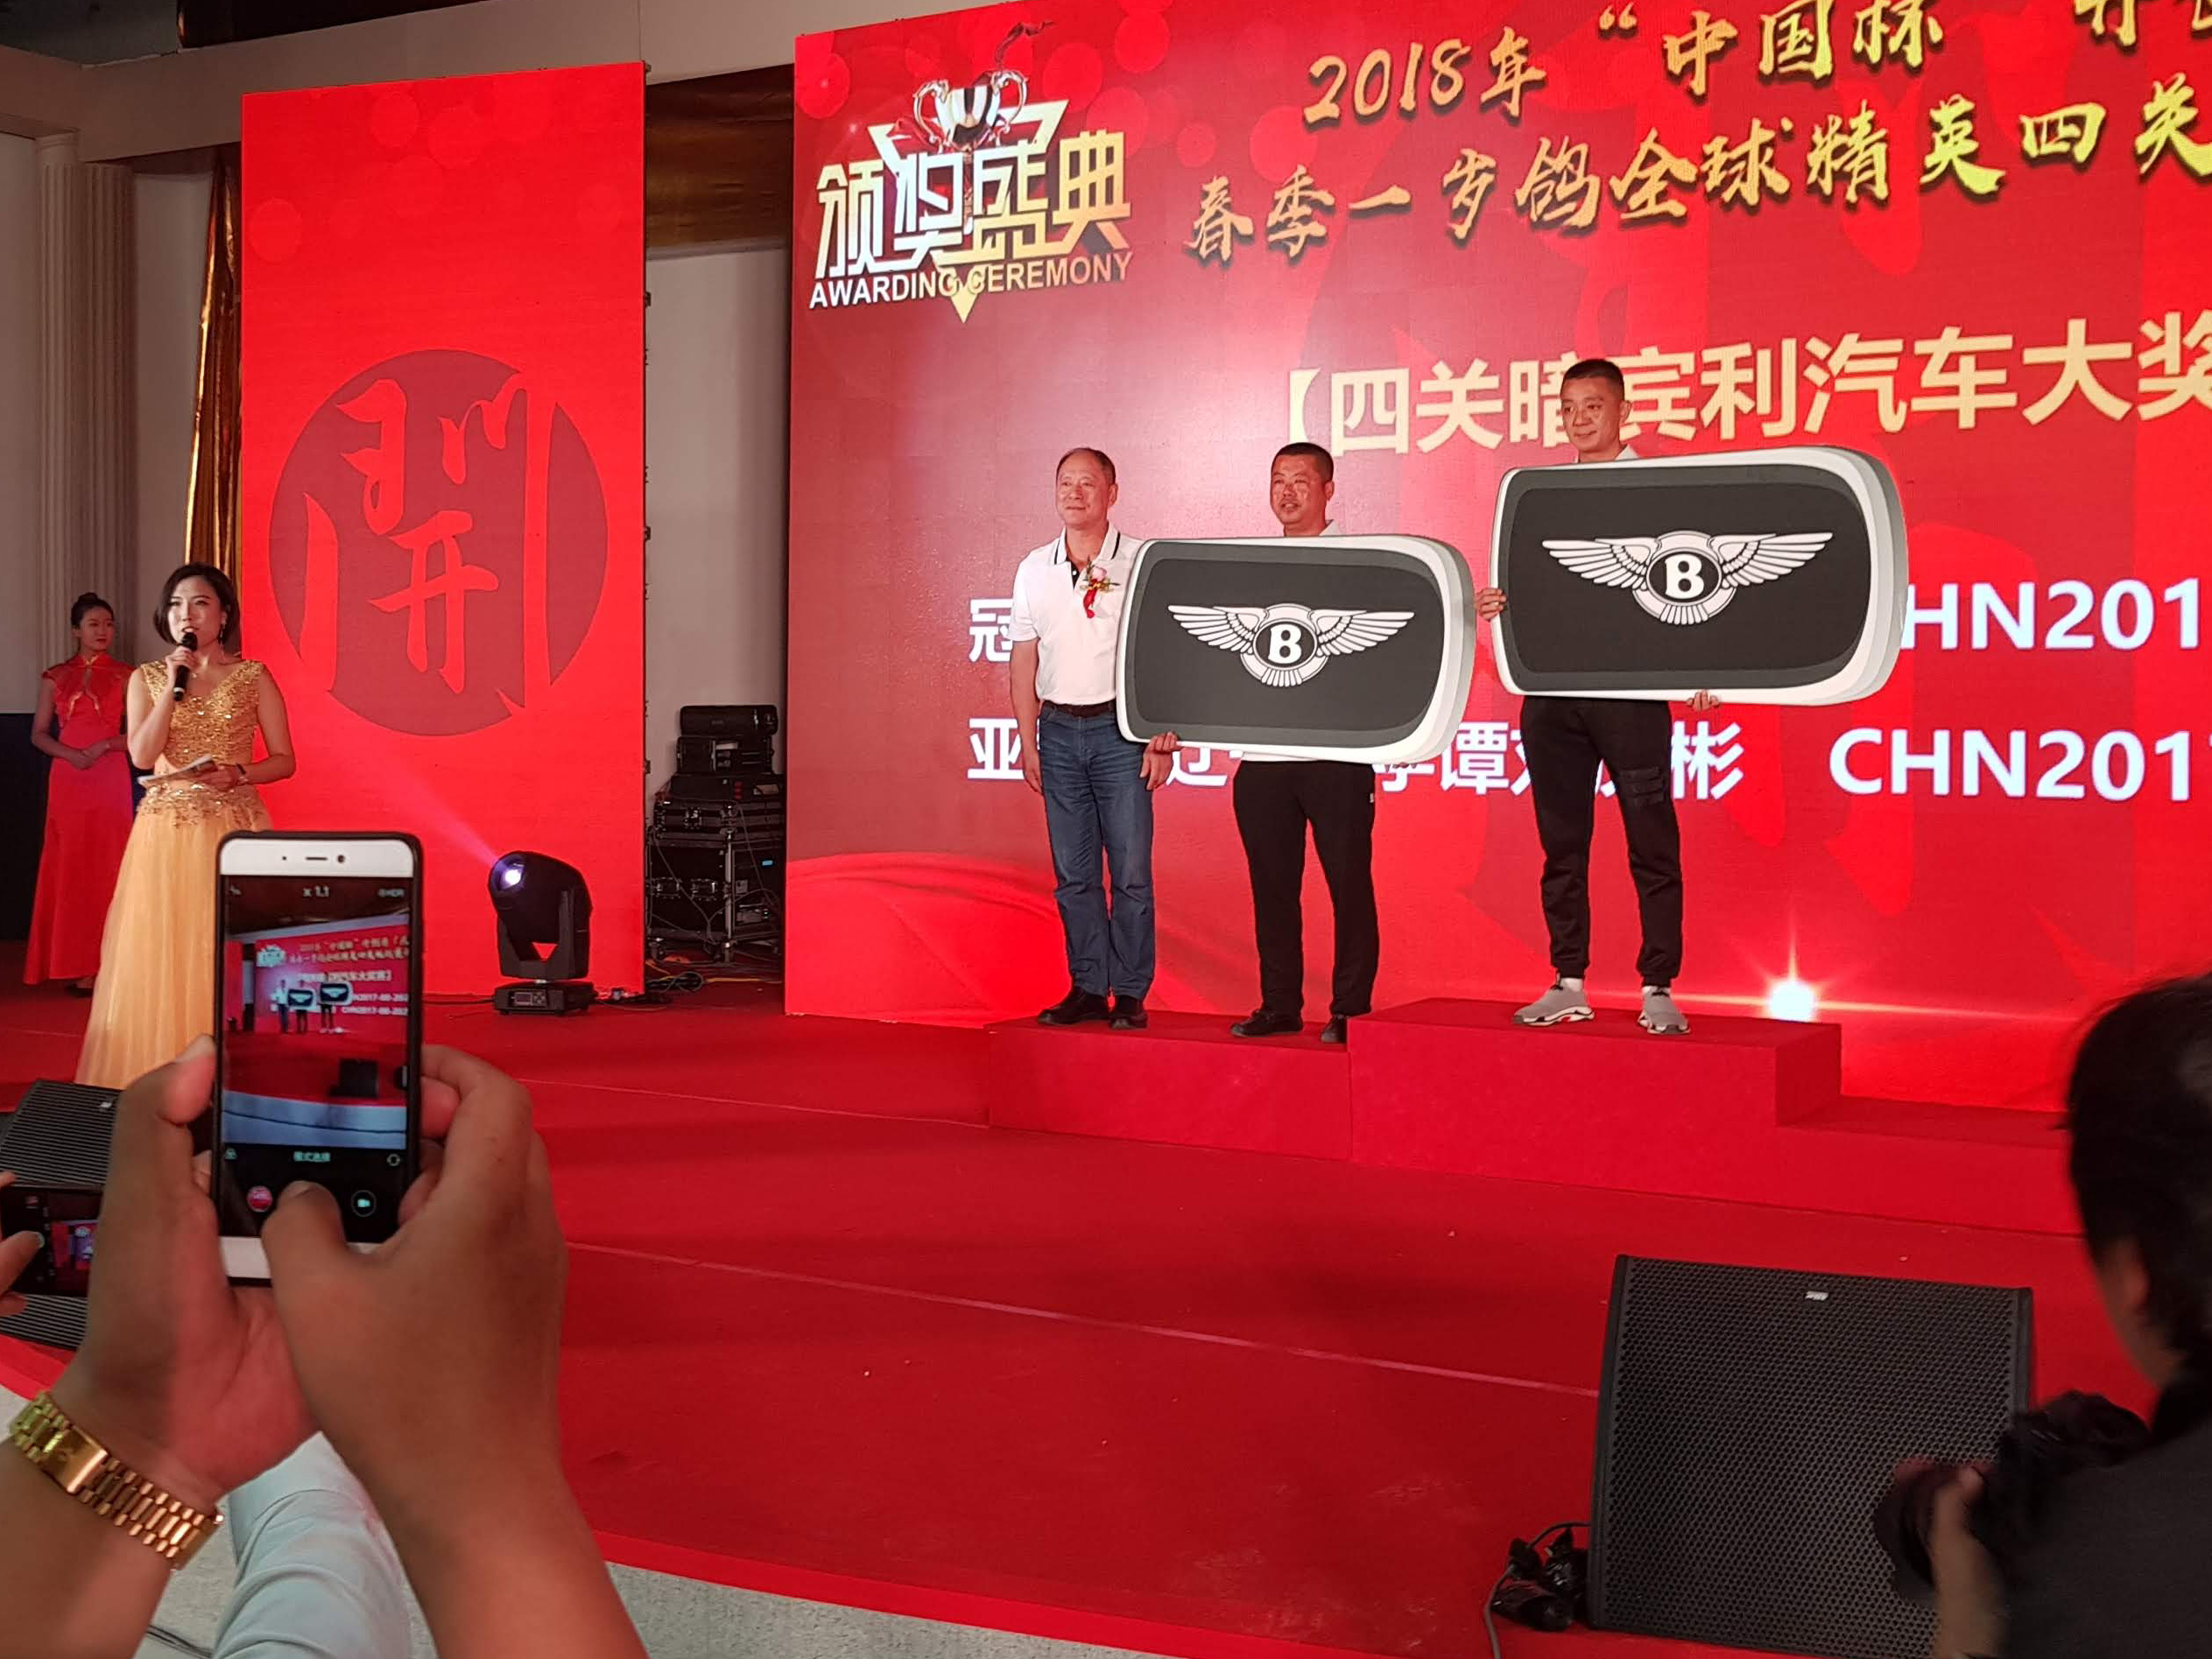 Postduiven Marketing Wechat en Chinezen